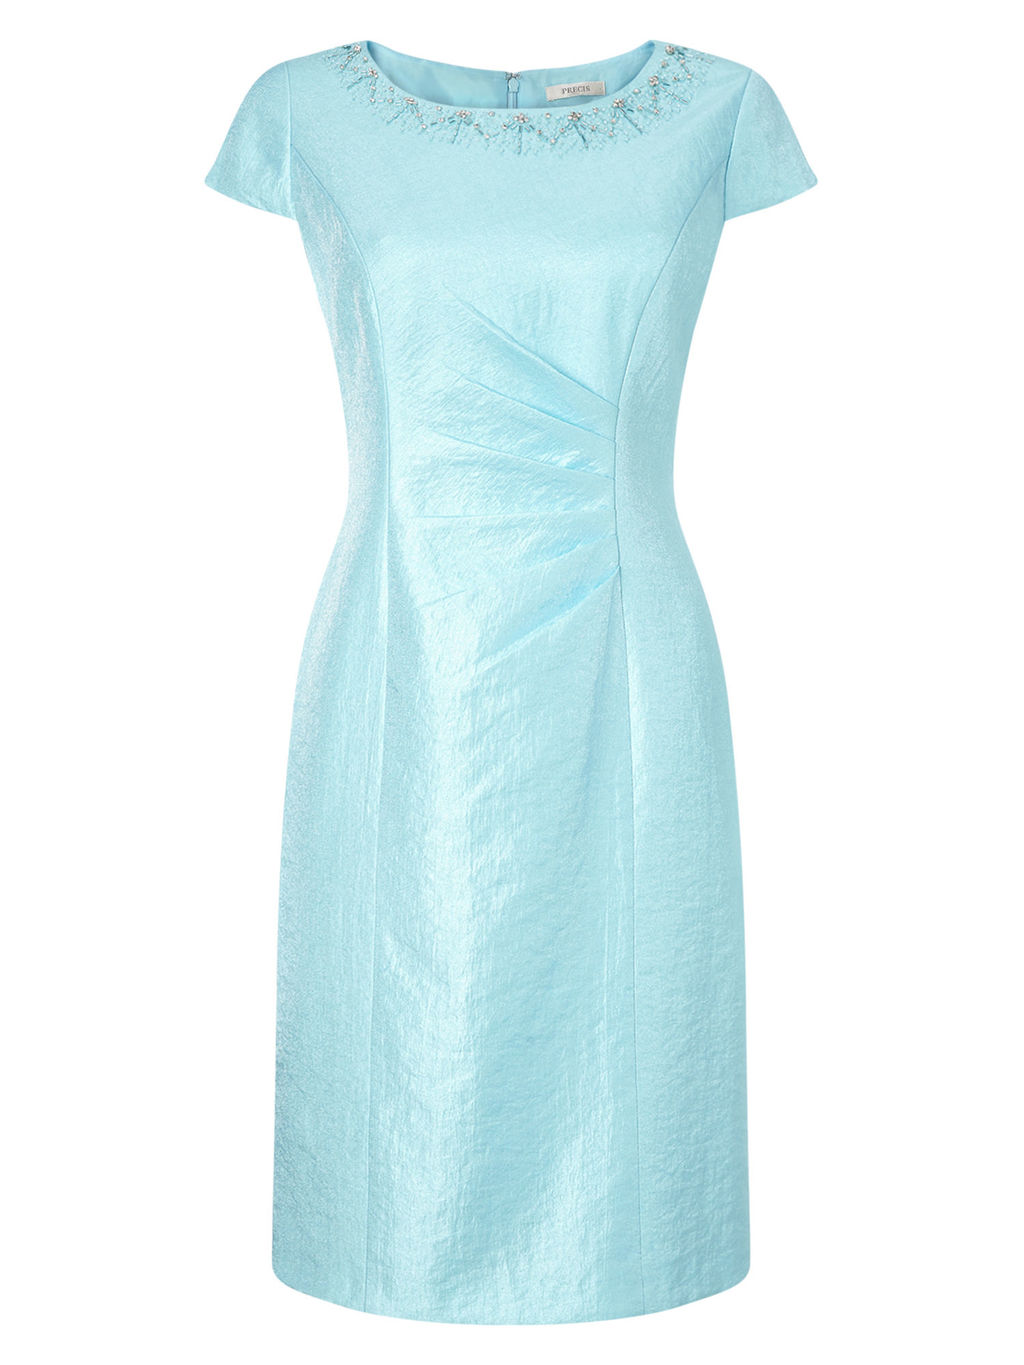 By Jeff Banks Shift Dress, Coral - style: shift; neckline: round neck; sleeve style: capped; fit: tailored/fitted; pattern: plain; predominant colour: pale blue; secondary colour: silver; length: on the knee; occasions: occasion; sleeve length: short sleeve; texture group: structured shiny - satin/tafetta/silk etc.; pattern type: fabric; embellishment: beading; fibres: viscose/rayon - mix; season: s/s 2016; wardrobe: event; embellishment location: bust